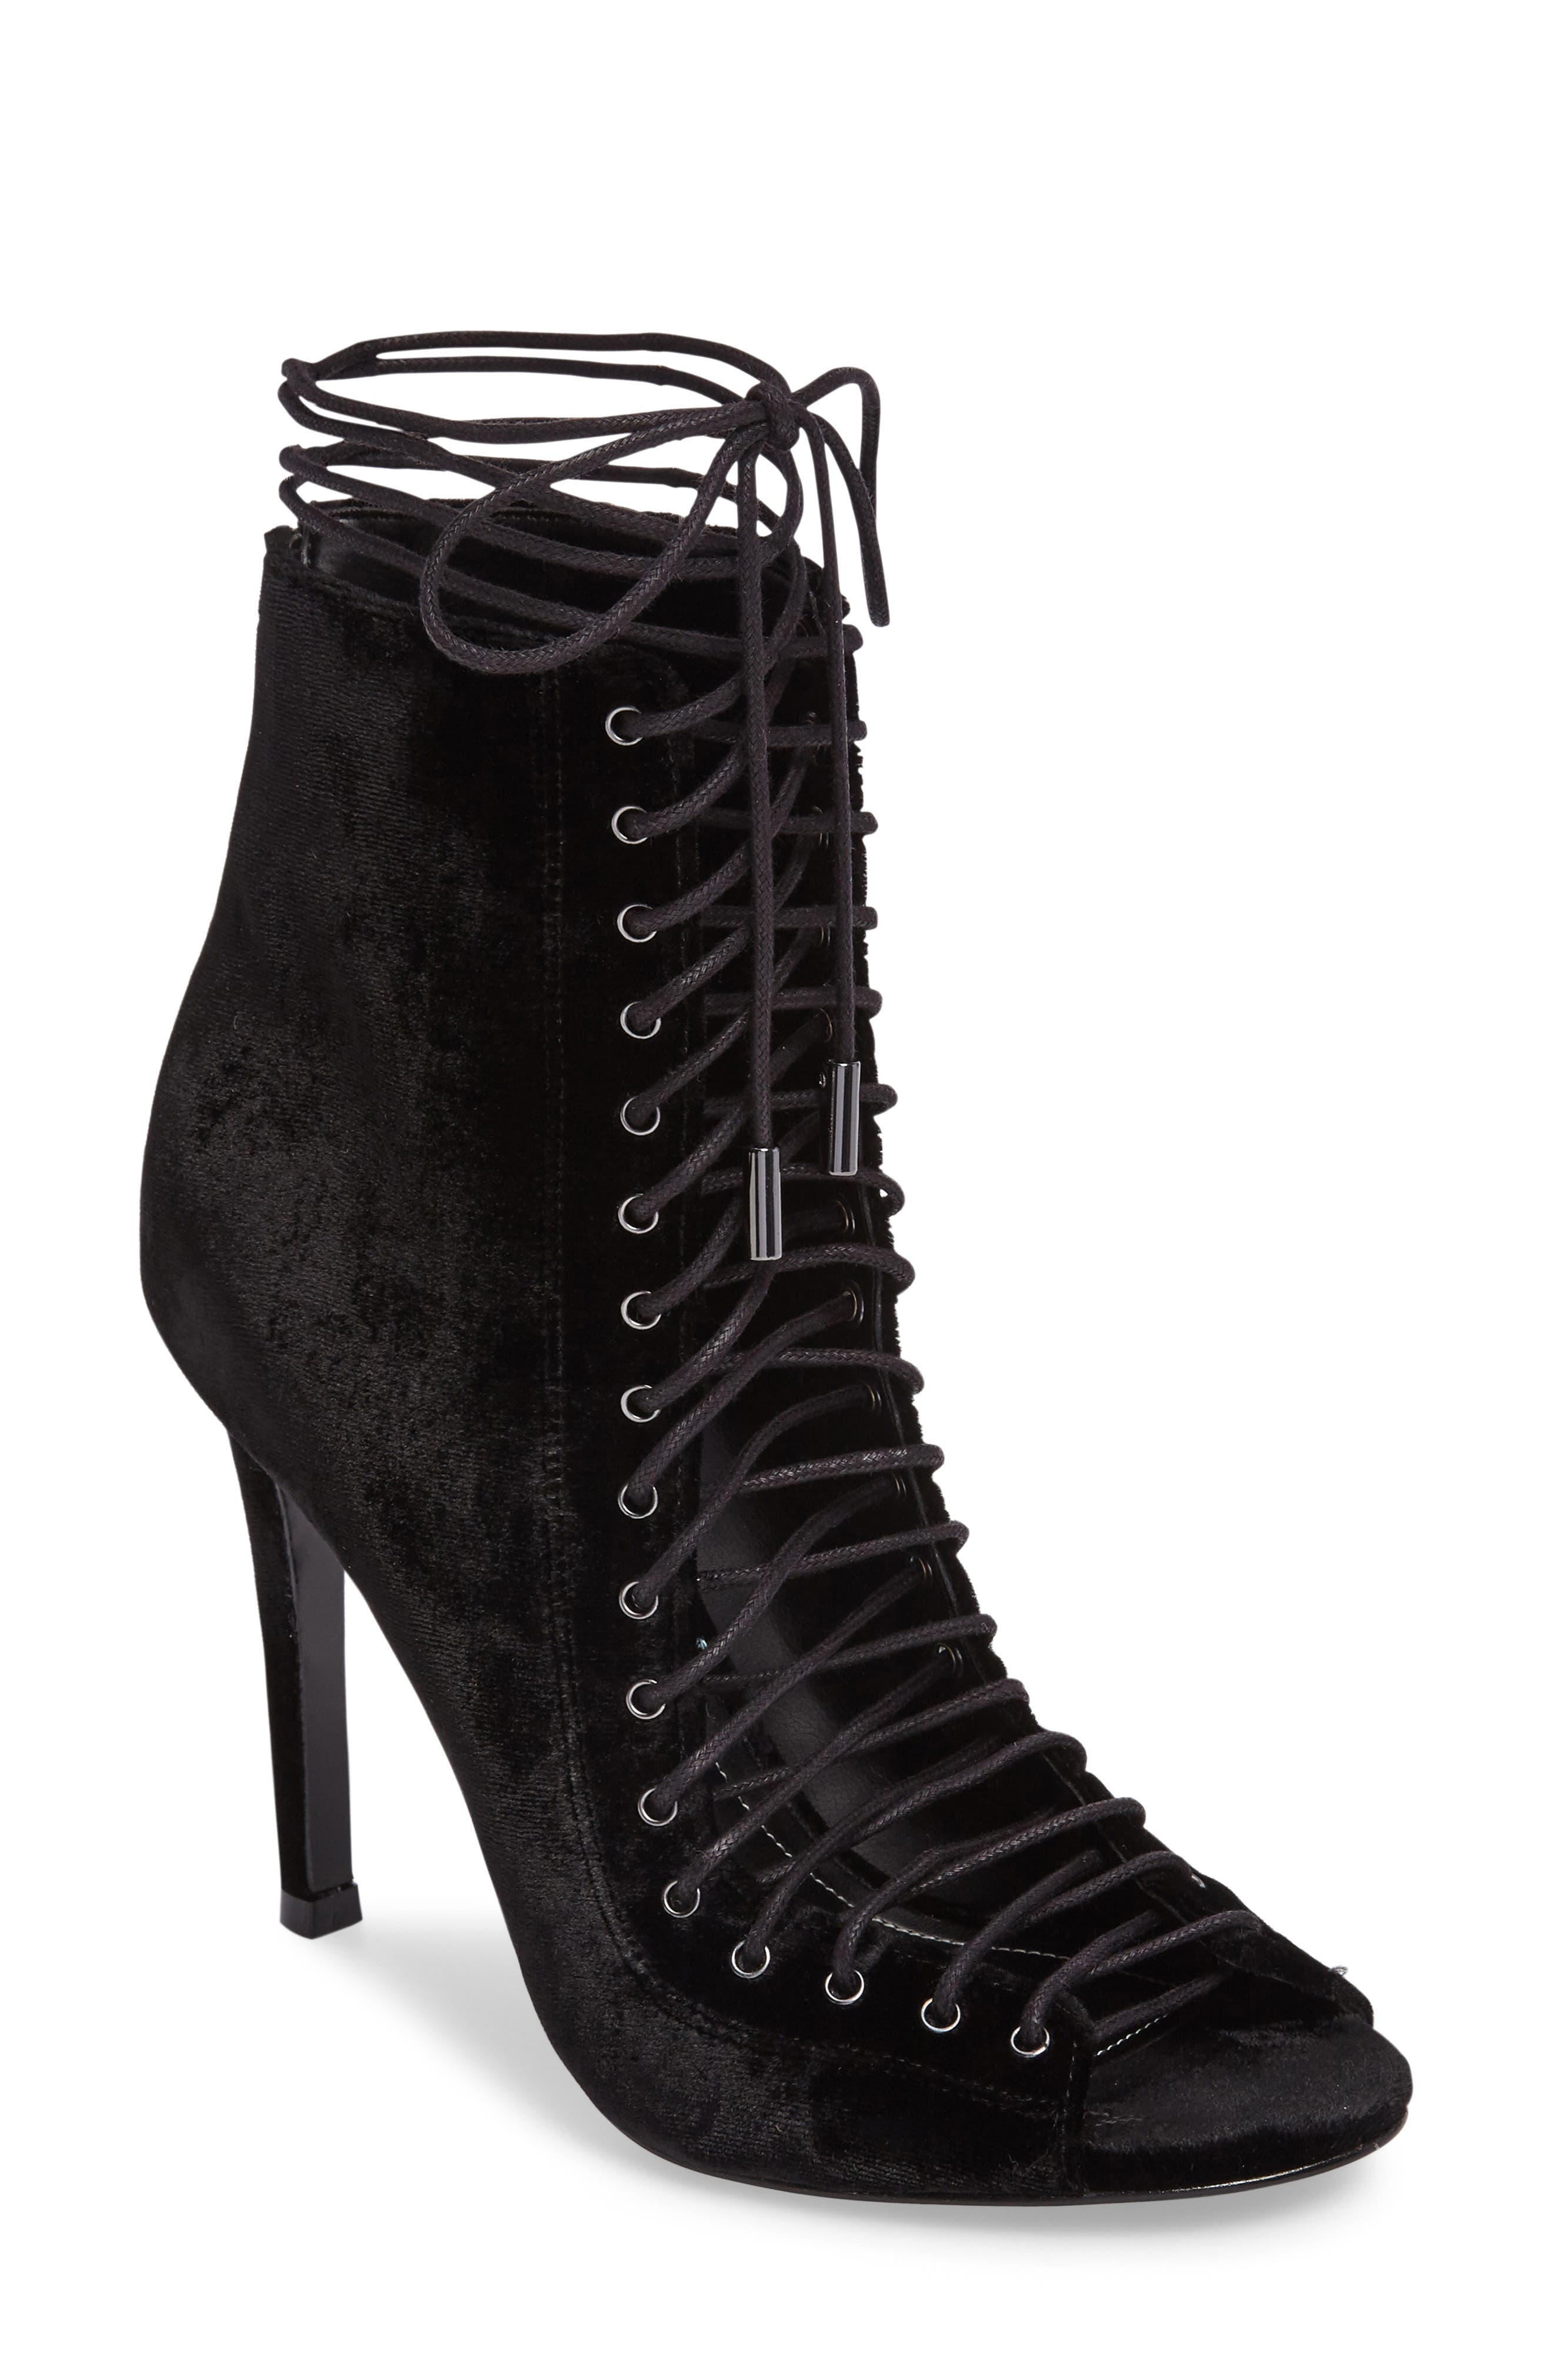 Main Image - KENDALL + KYLIE 'Ginny' Lace-Up Sandal (Women)